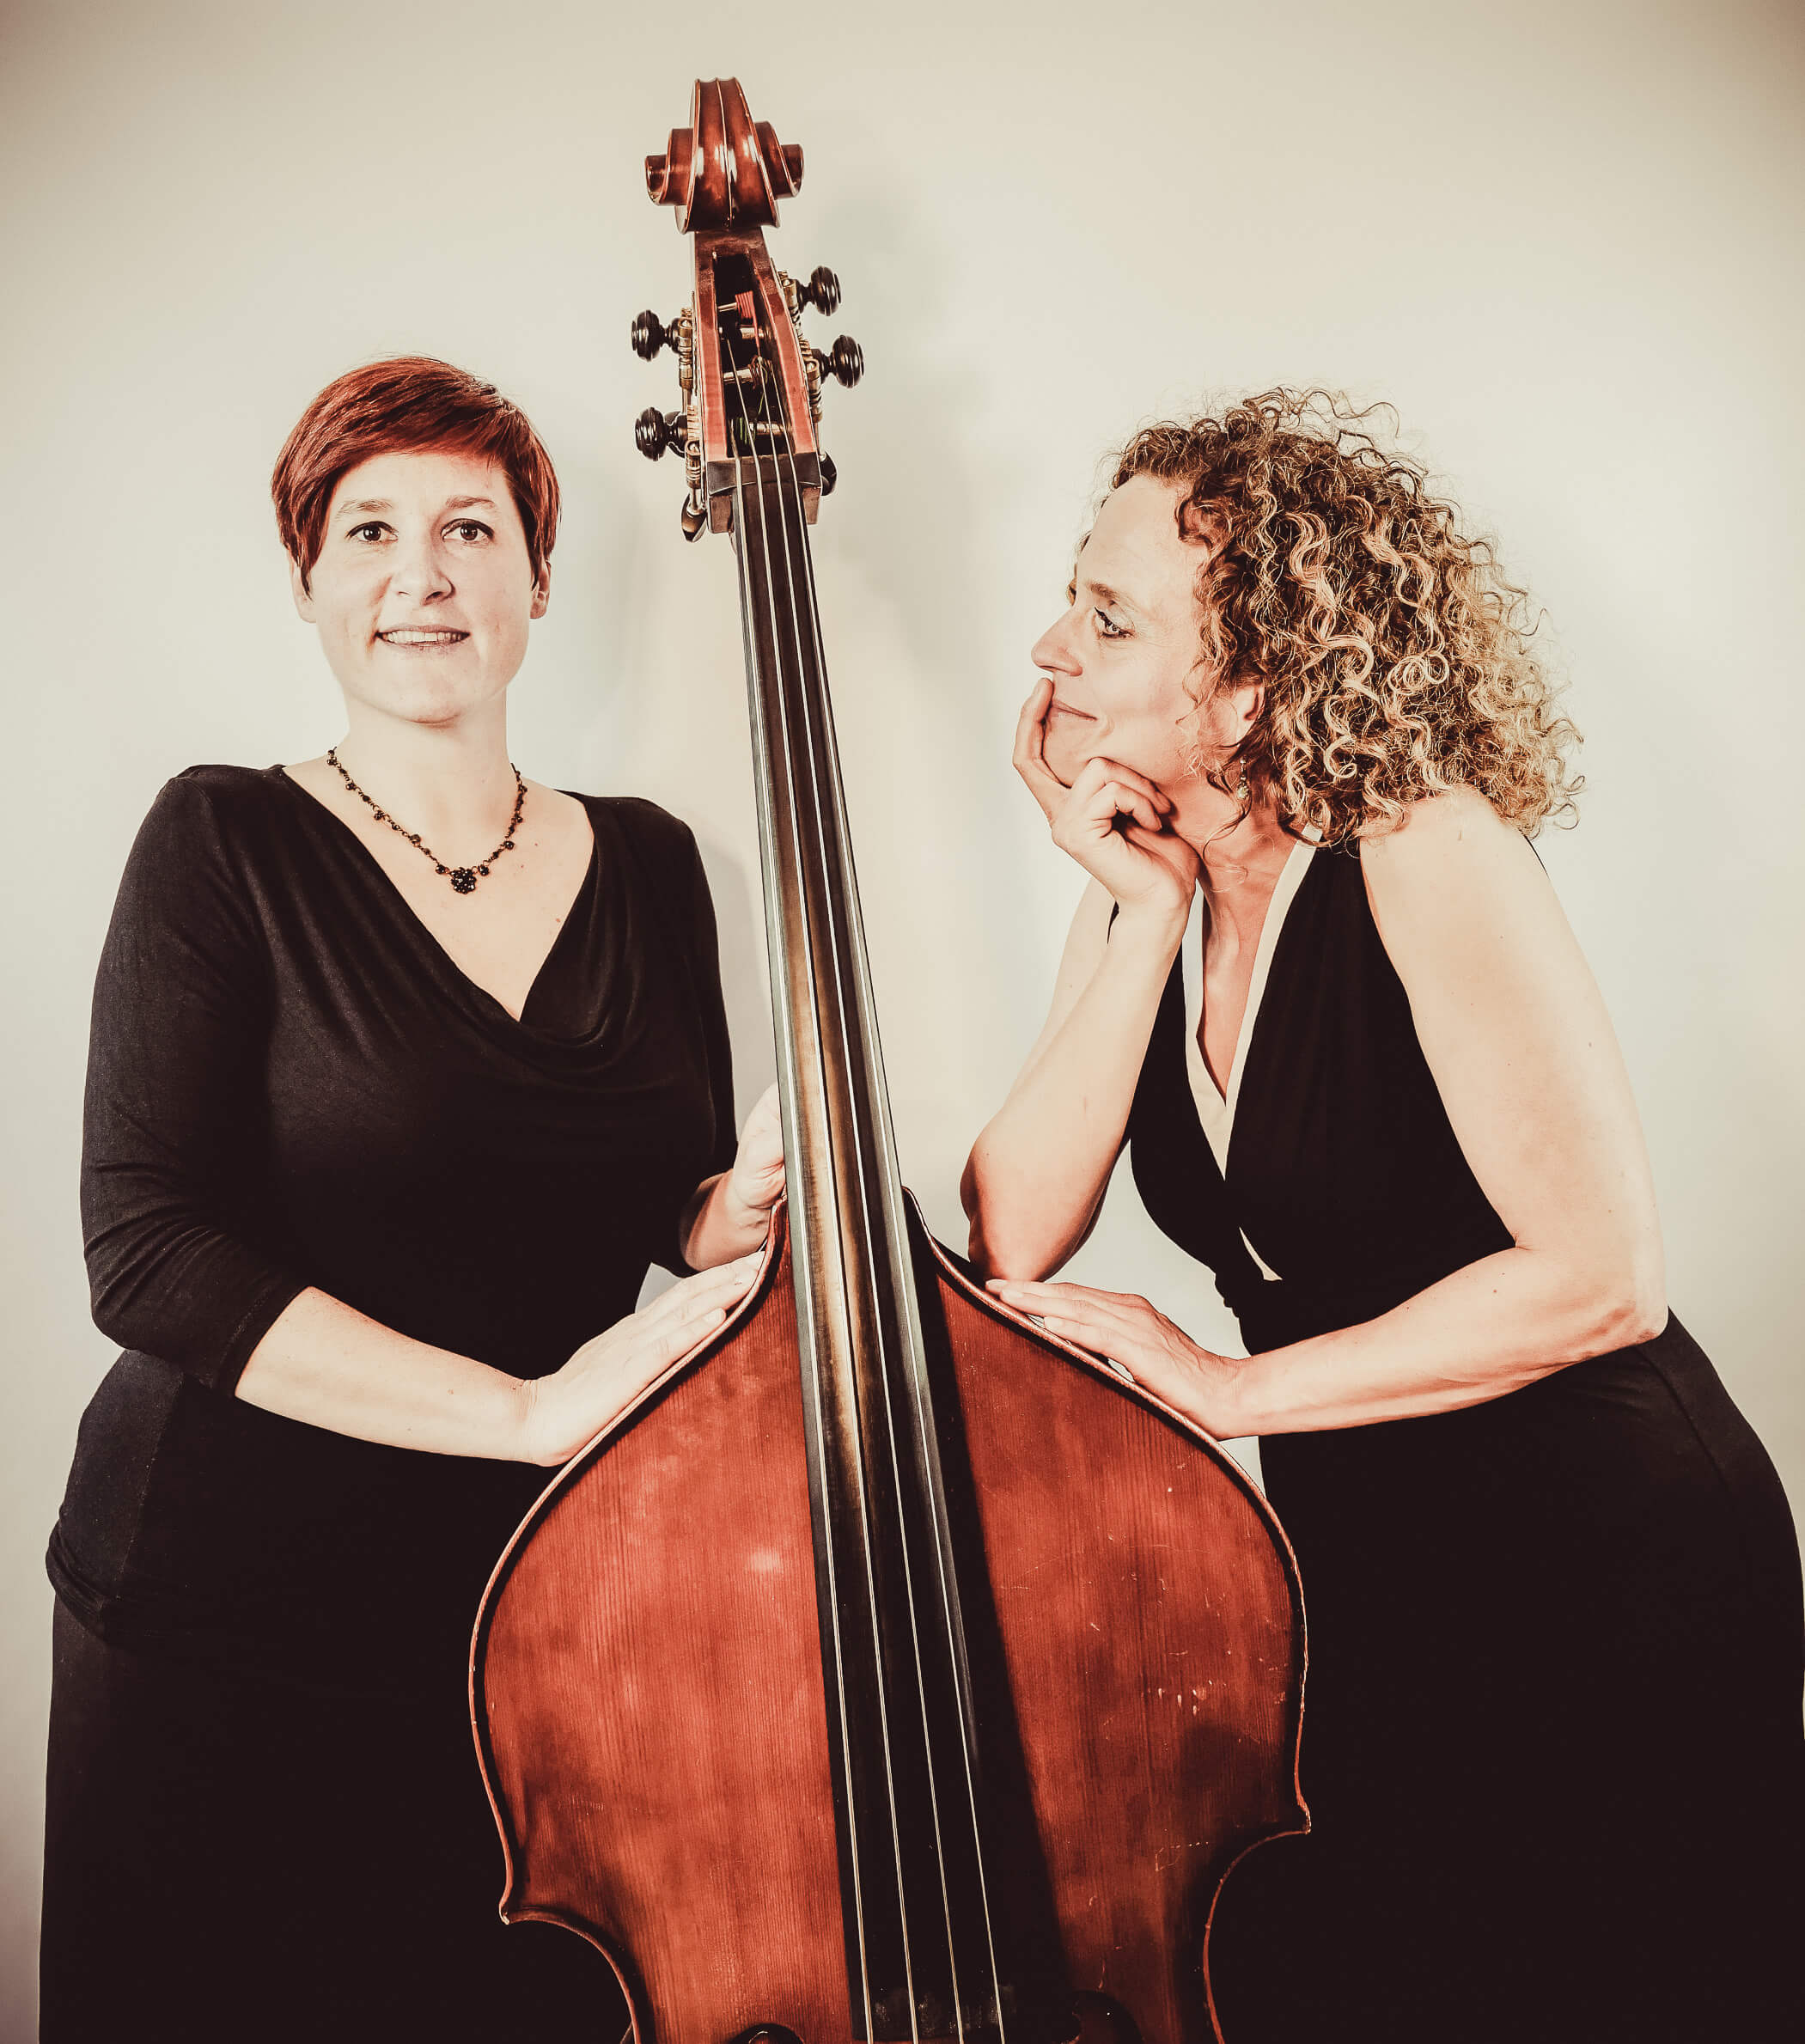 11.10.2019 um 19:30 Uhr – Bar-Jazz Jacques' Weindepot: »Woman's Work«<a href='index.php?LL_DE&BNA=7022&von=index.php&zeige=events&sub=EV_1856'> <img src='picts/moreinfo.jpg' alt='Mehr Info' width='20' height='12' align='absmiddle' /></a>